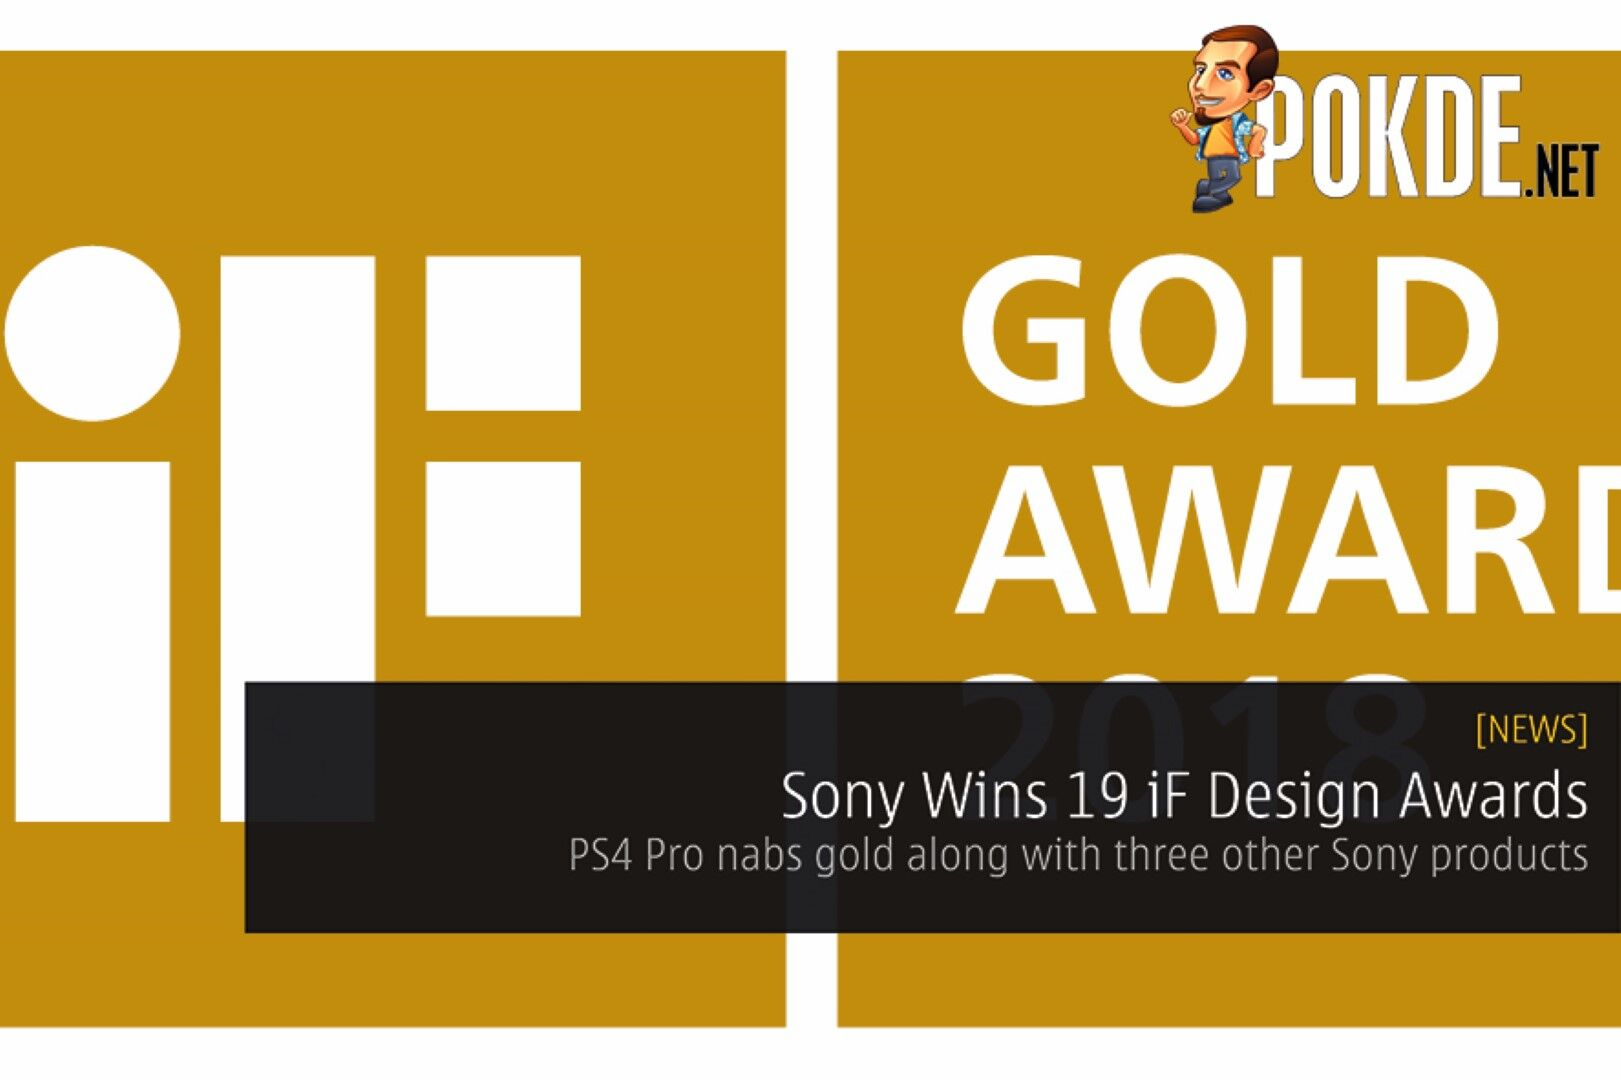 Sony Wins 19 iF Design Awards - PlayStation 4 Pro nabs gold along with three other Sony products 19